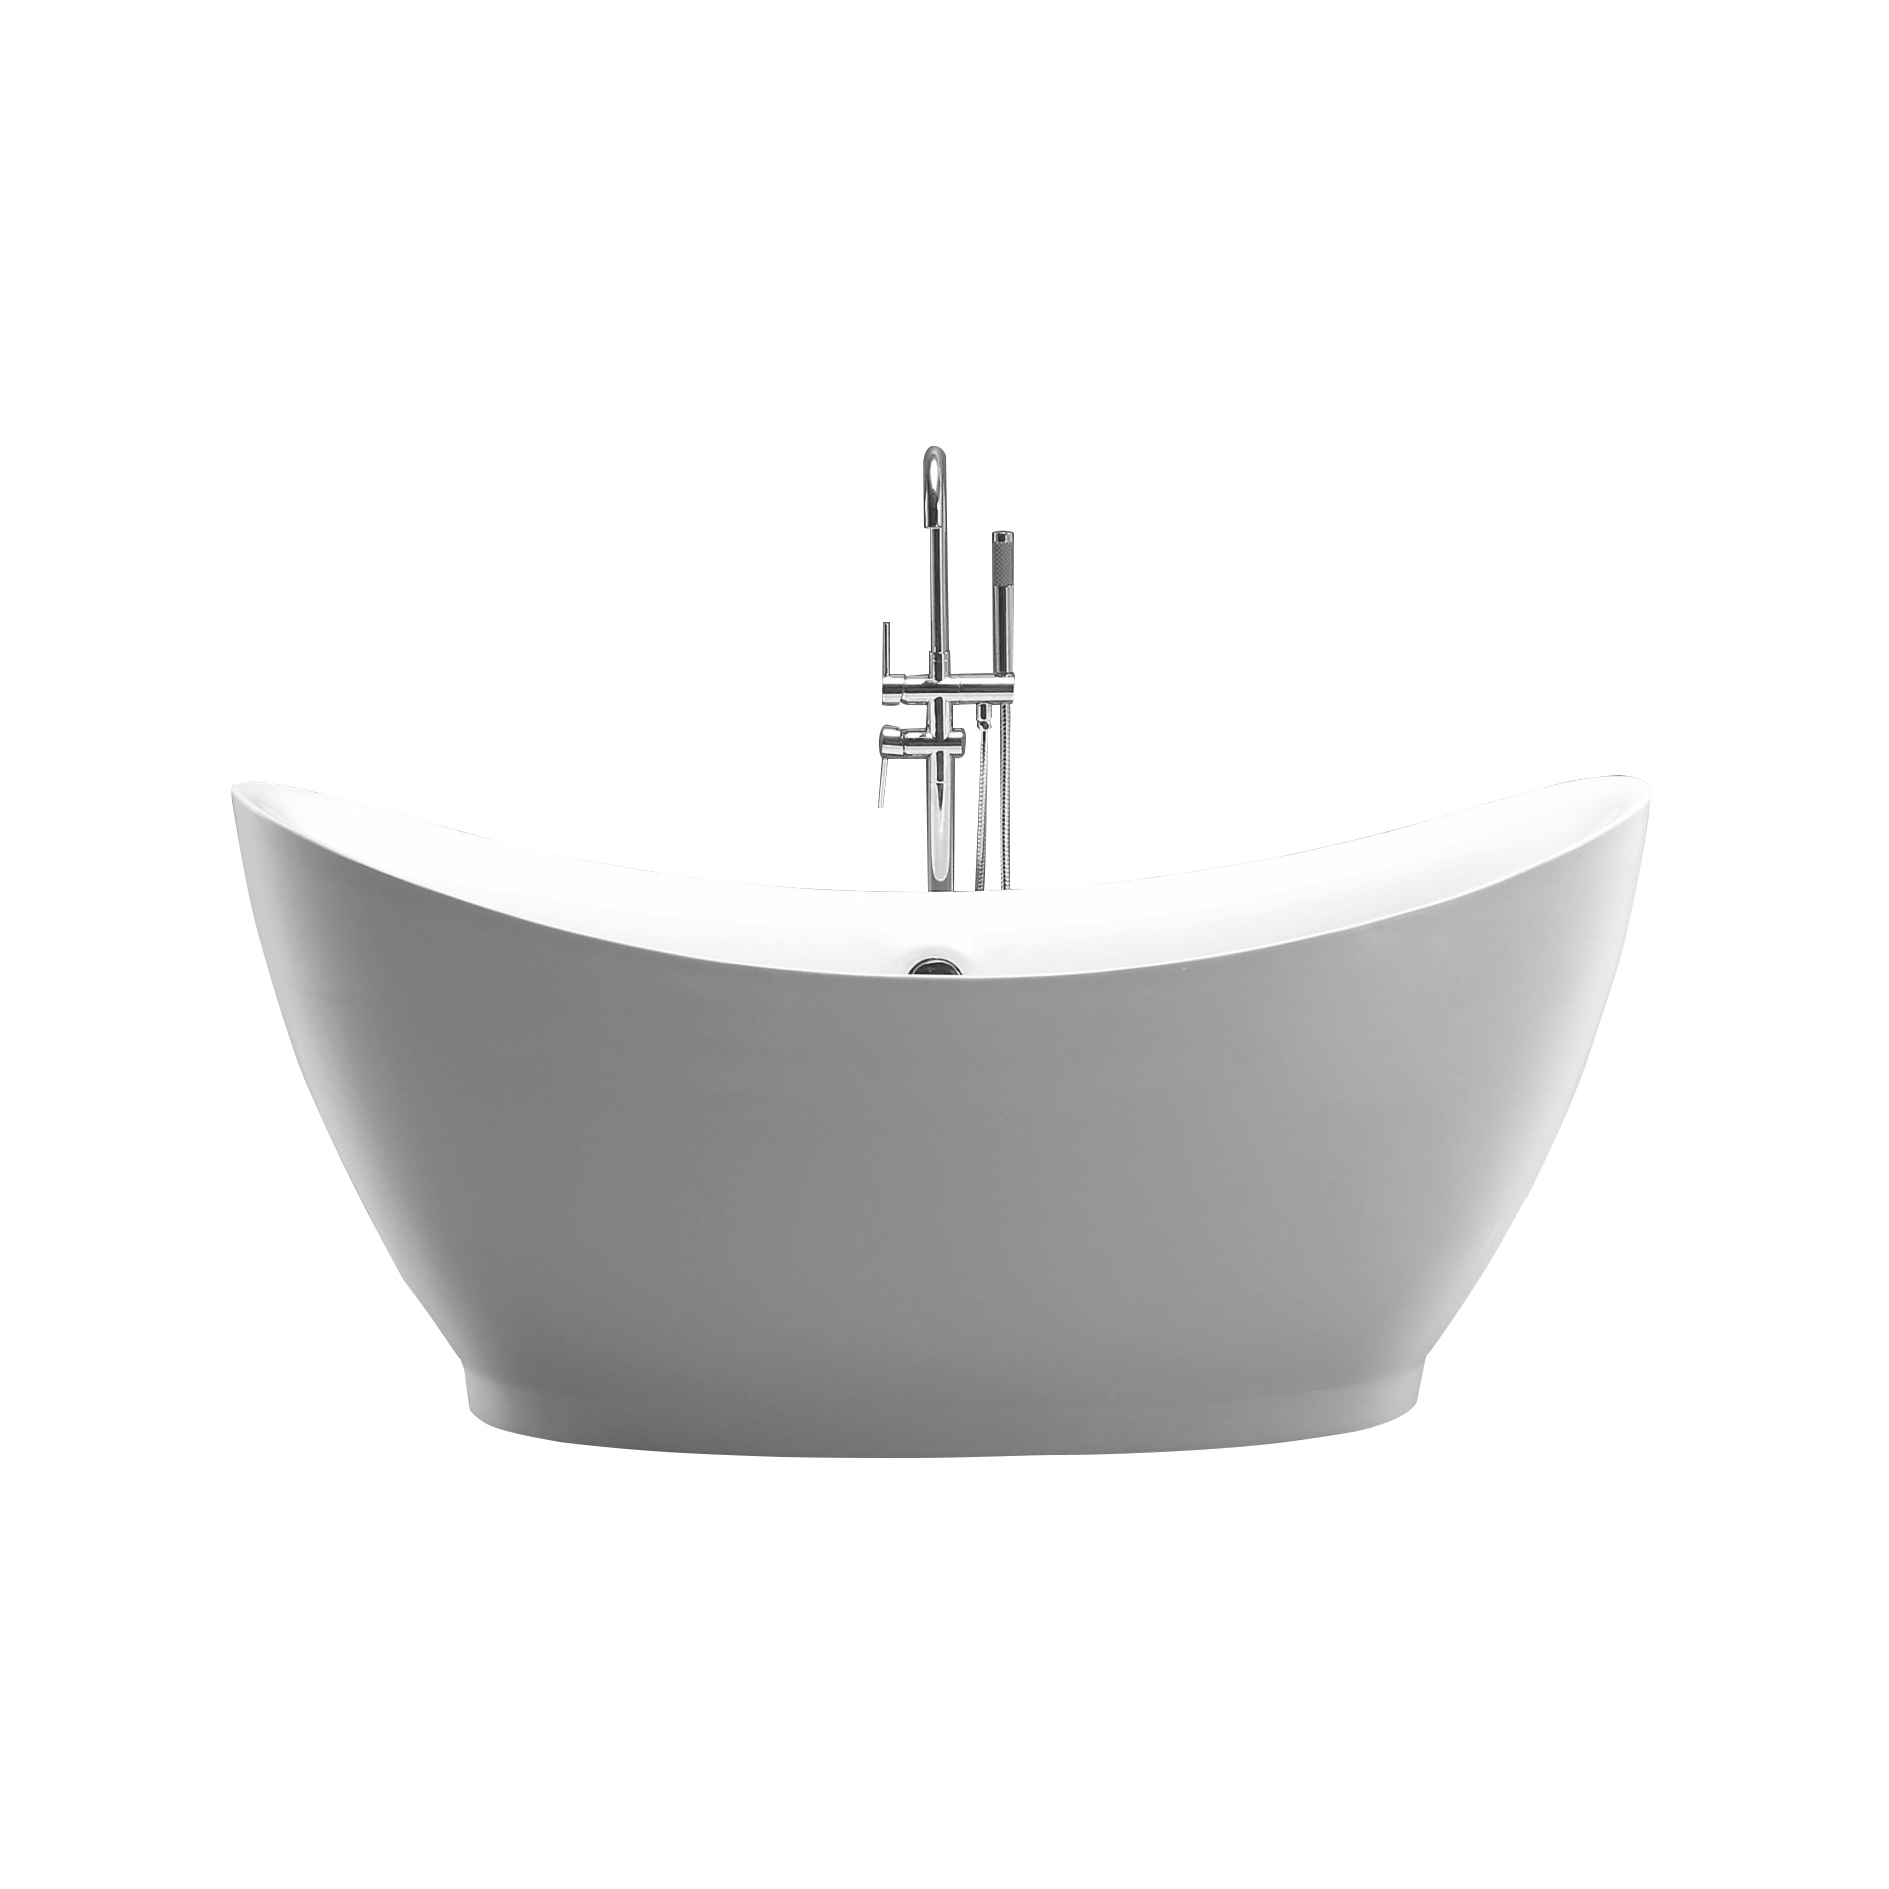 bathtub price in india images,photos & pictures on Alibaba